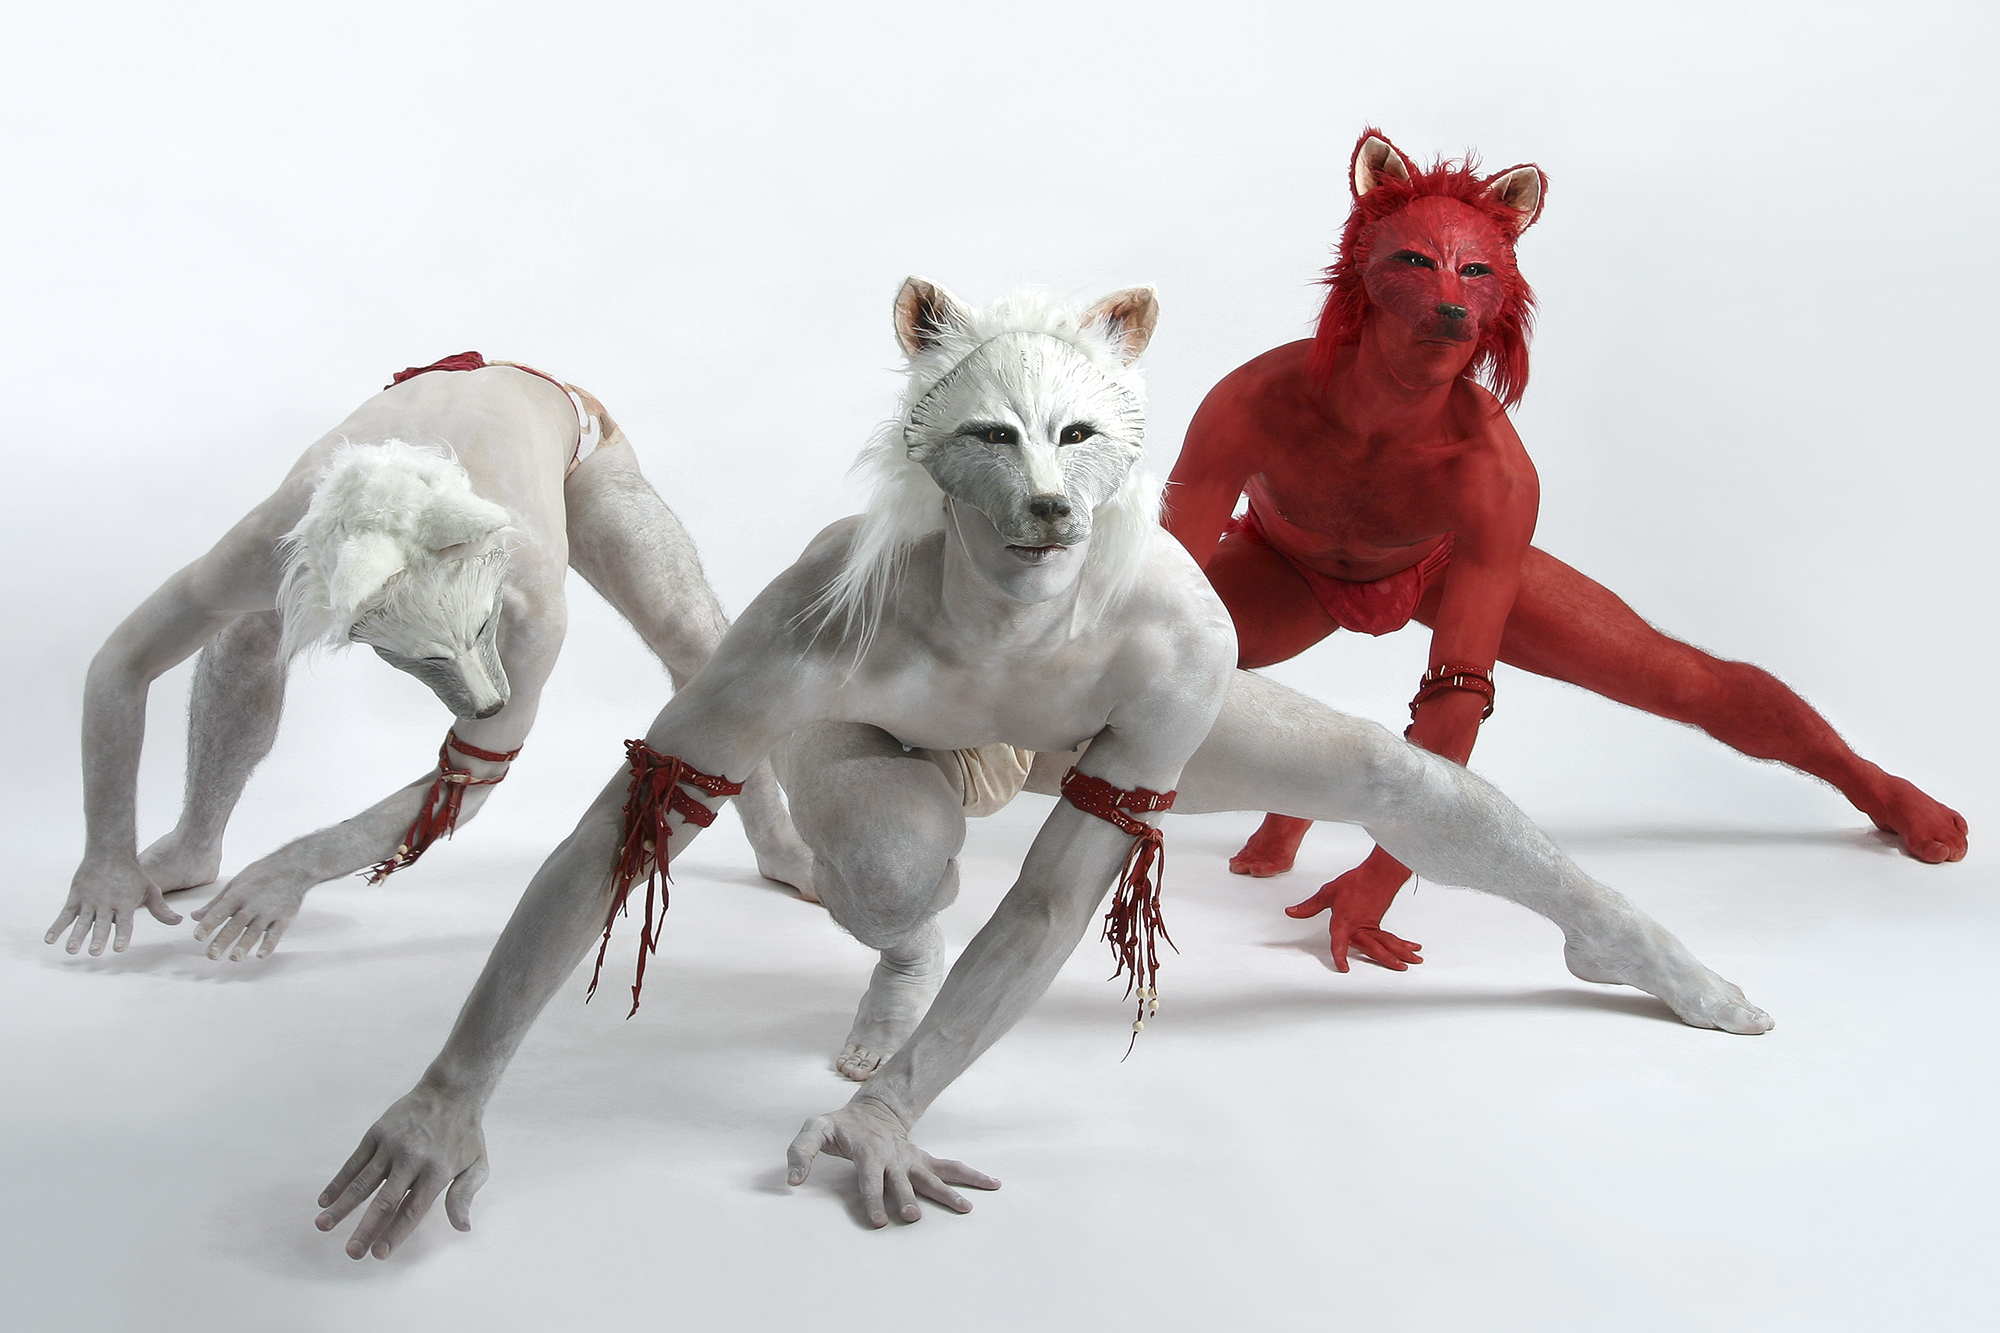 Wolf-in-Skins - Direction and Choreography by Christopher Williams, Costume Design by Andrew Jordan